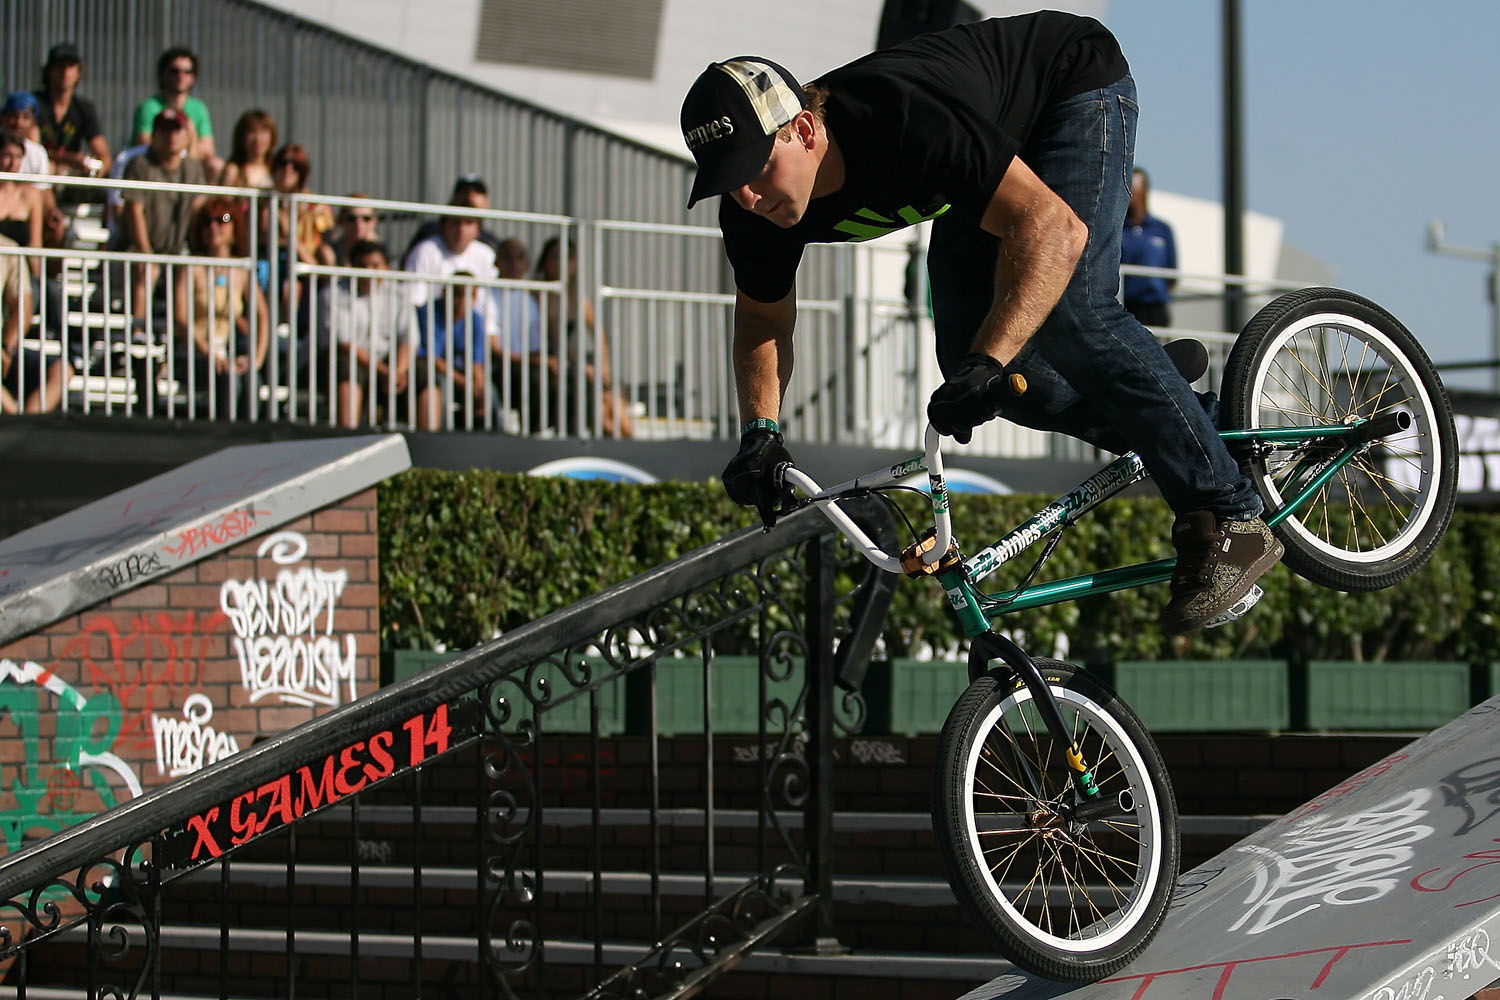 A competitor participates in the BMX Freestyle Street final during X Games 14 on July 31, 2008 at the Staples Center in Los Angeles, California.